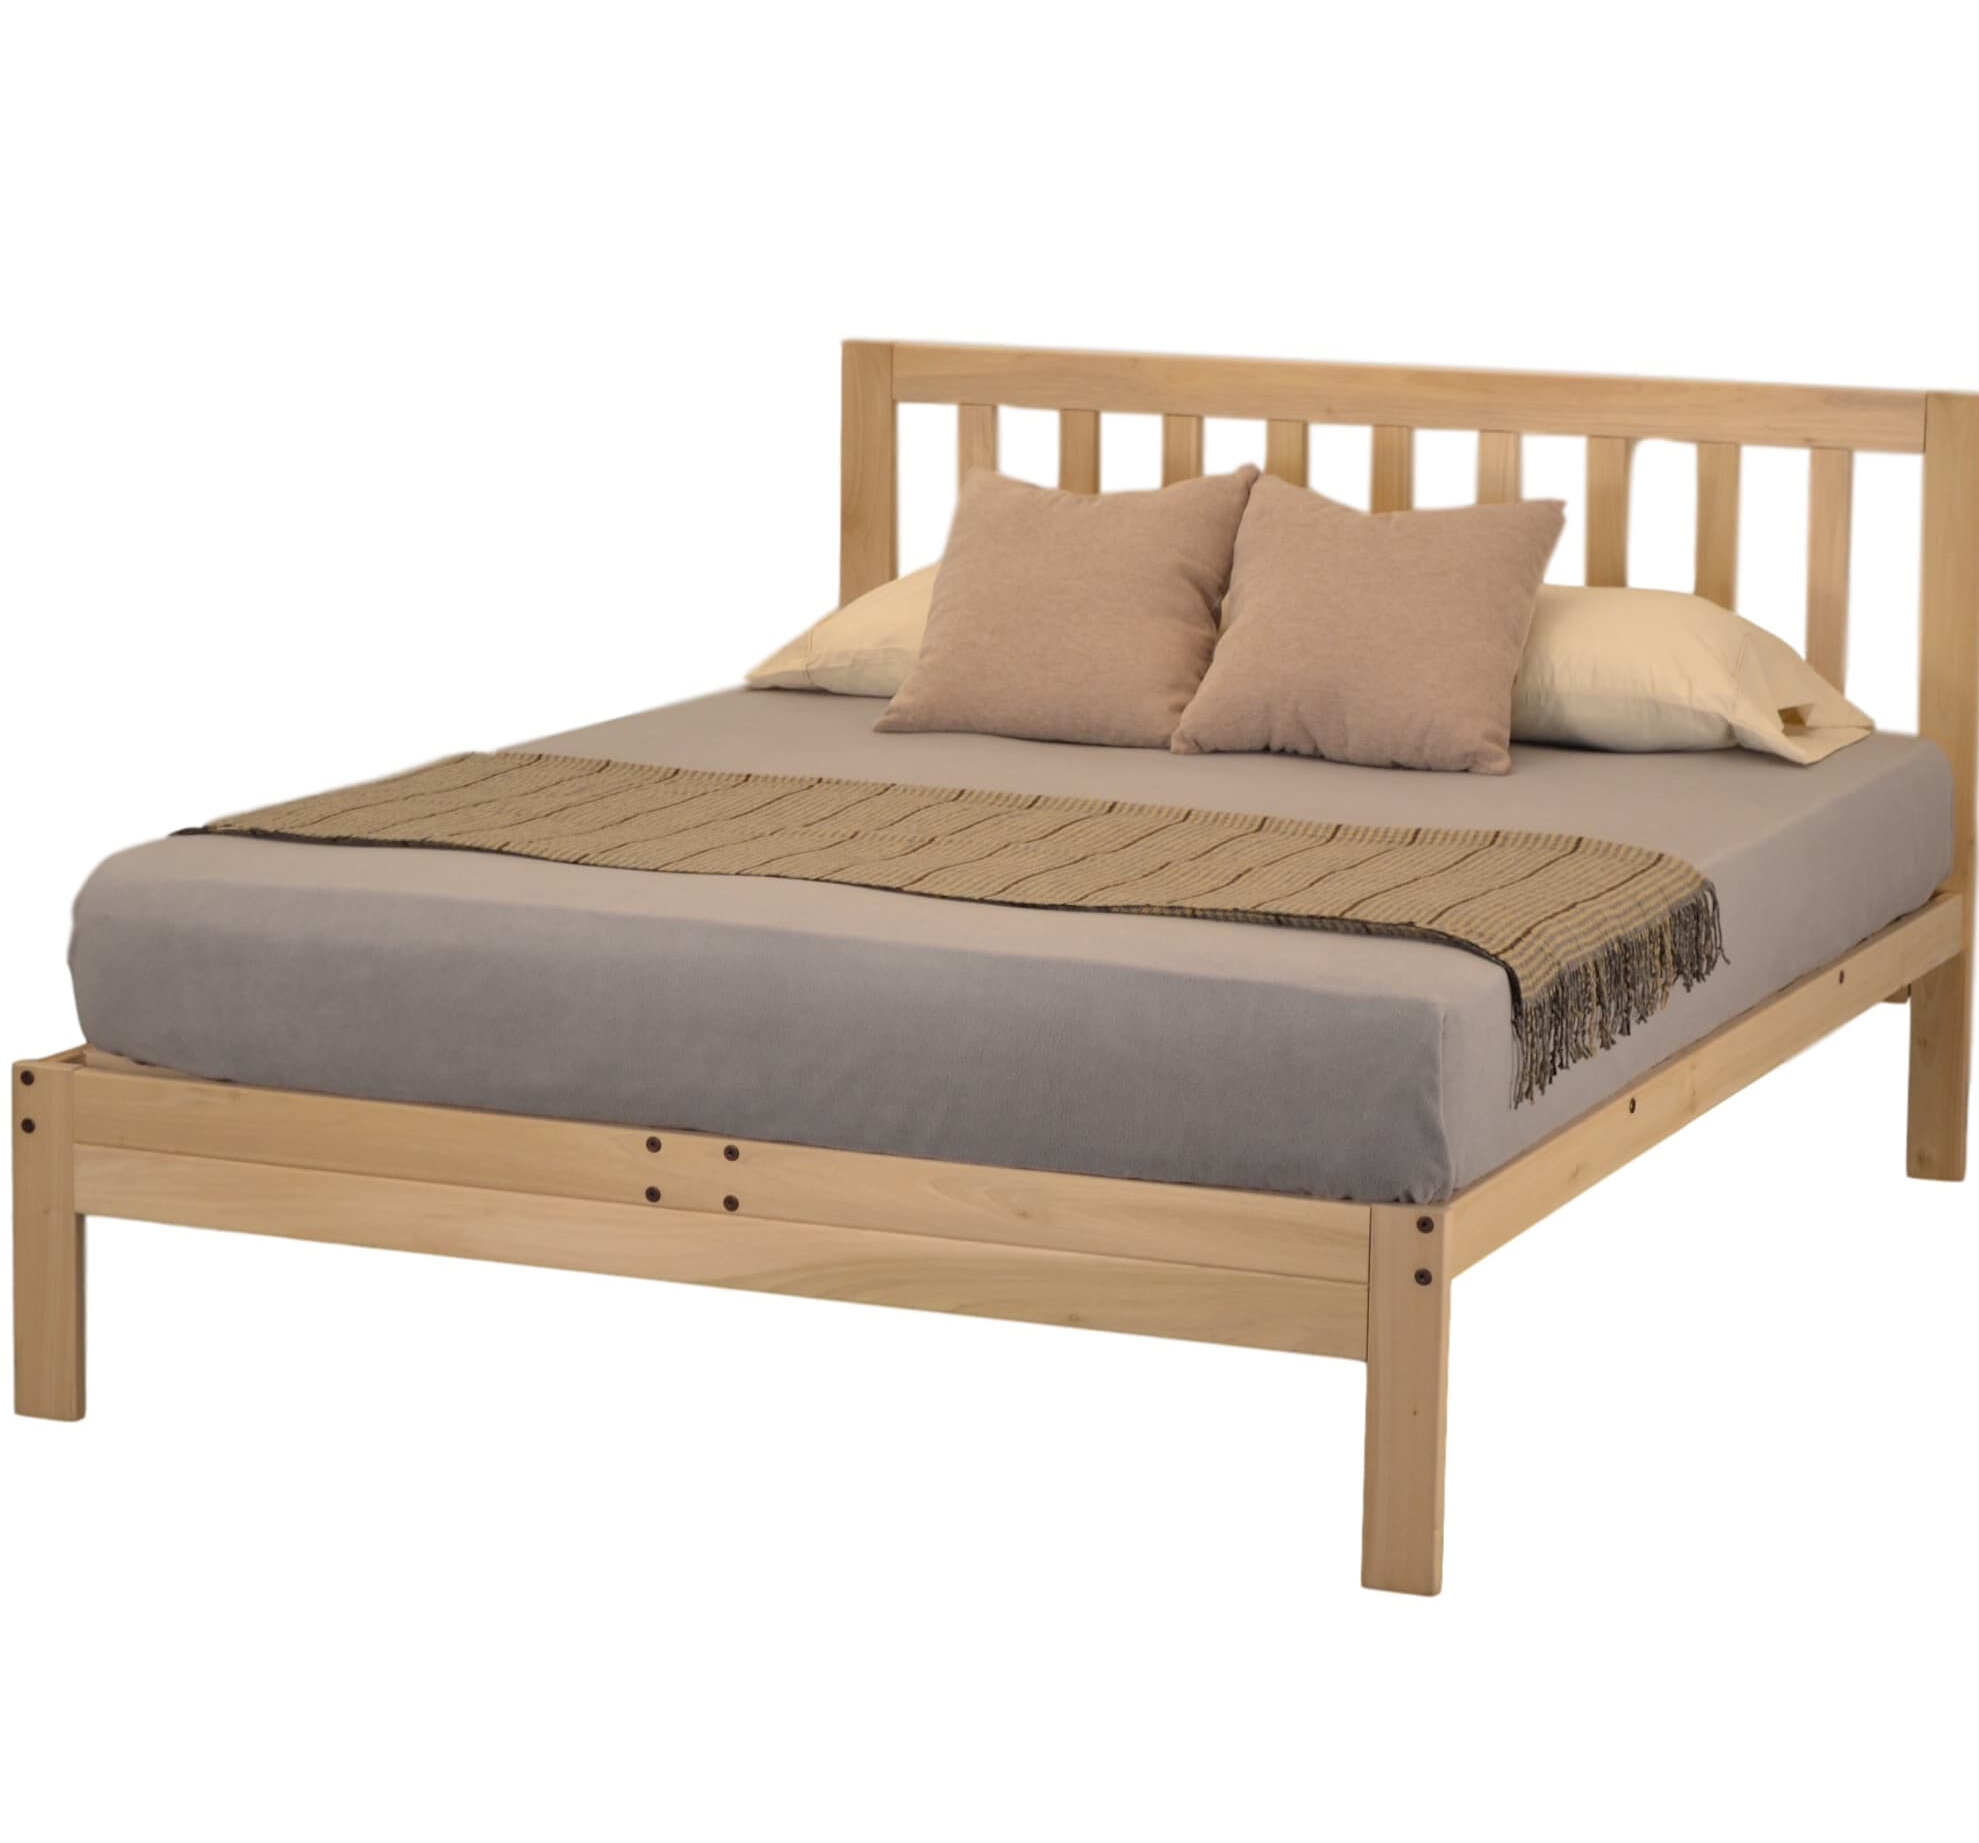 kd frames charleston 2 platform bed reviews wayfair